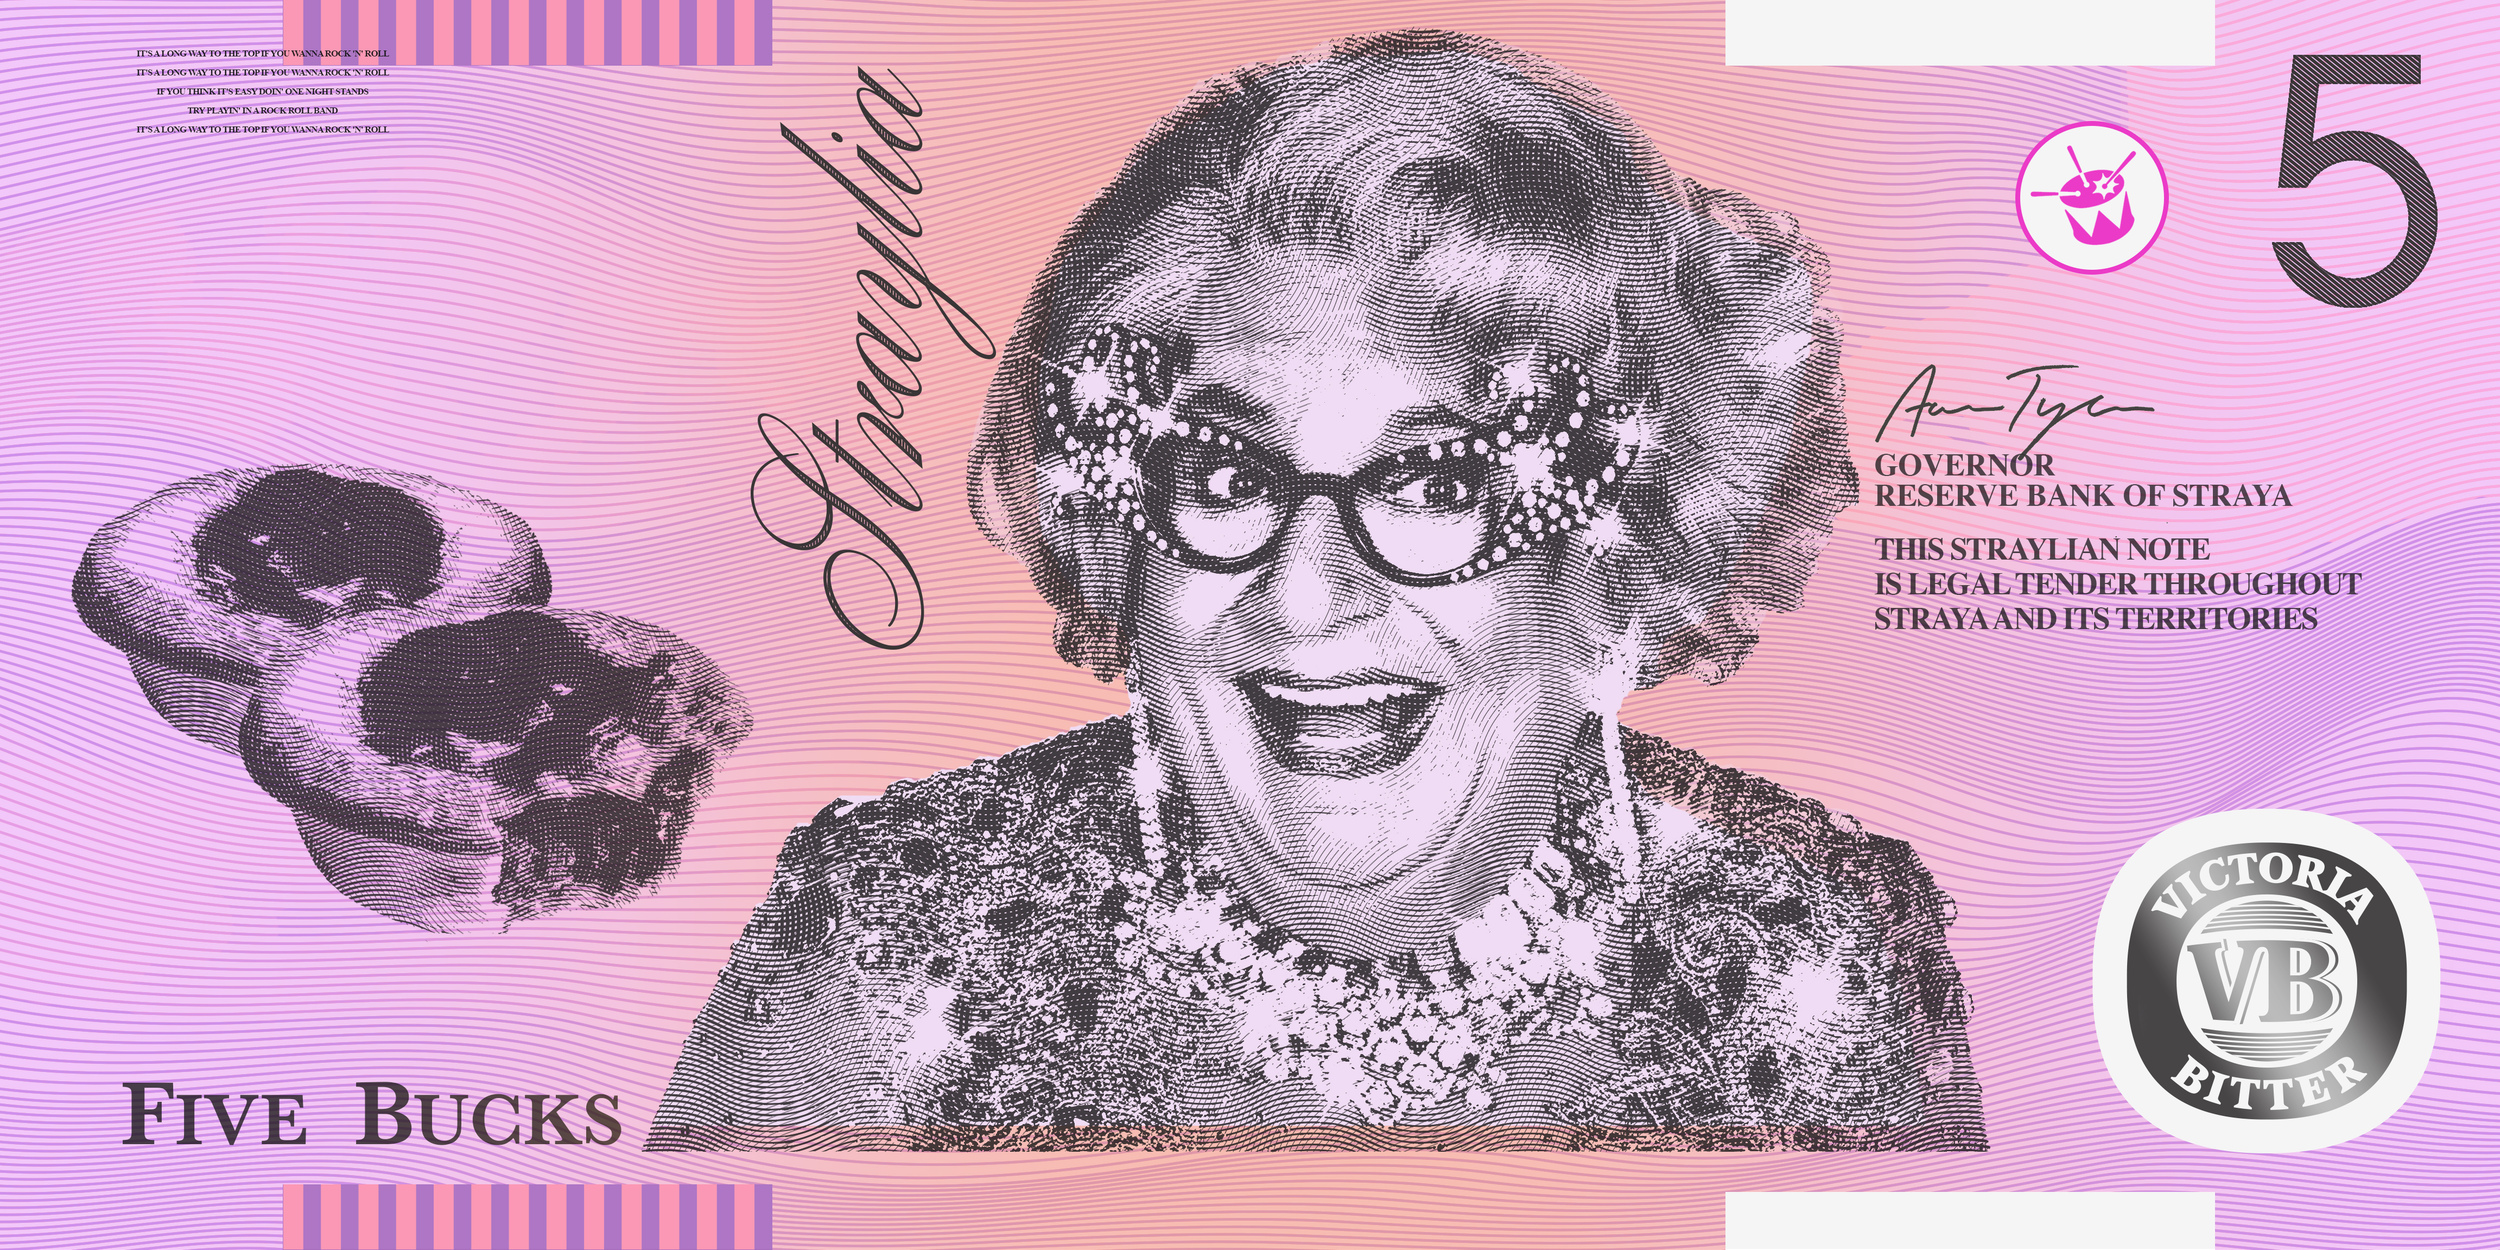 Dame Edna,Pies, and VB.